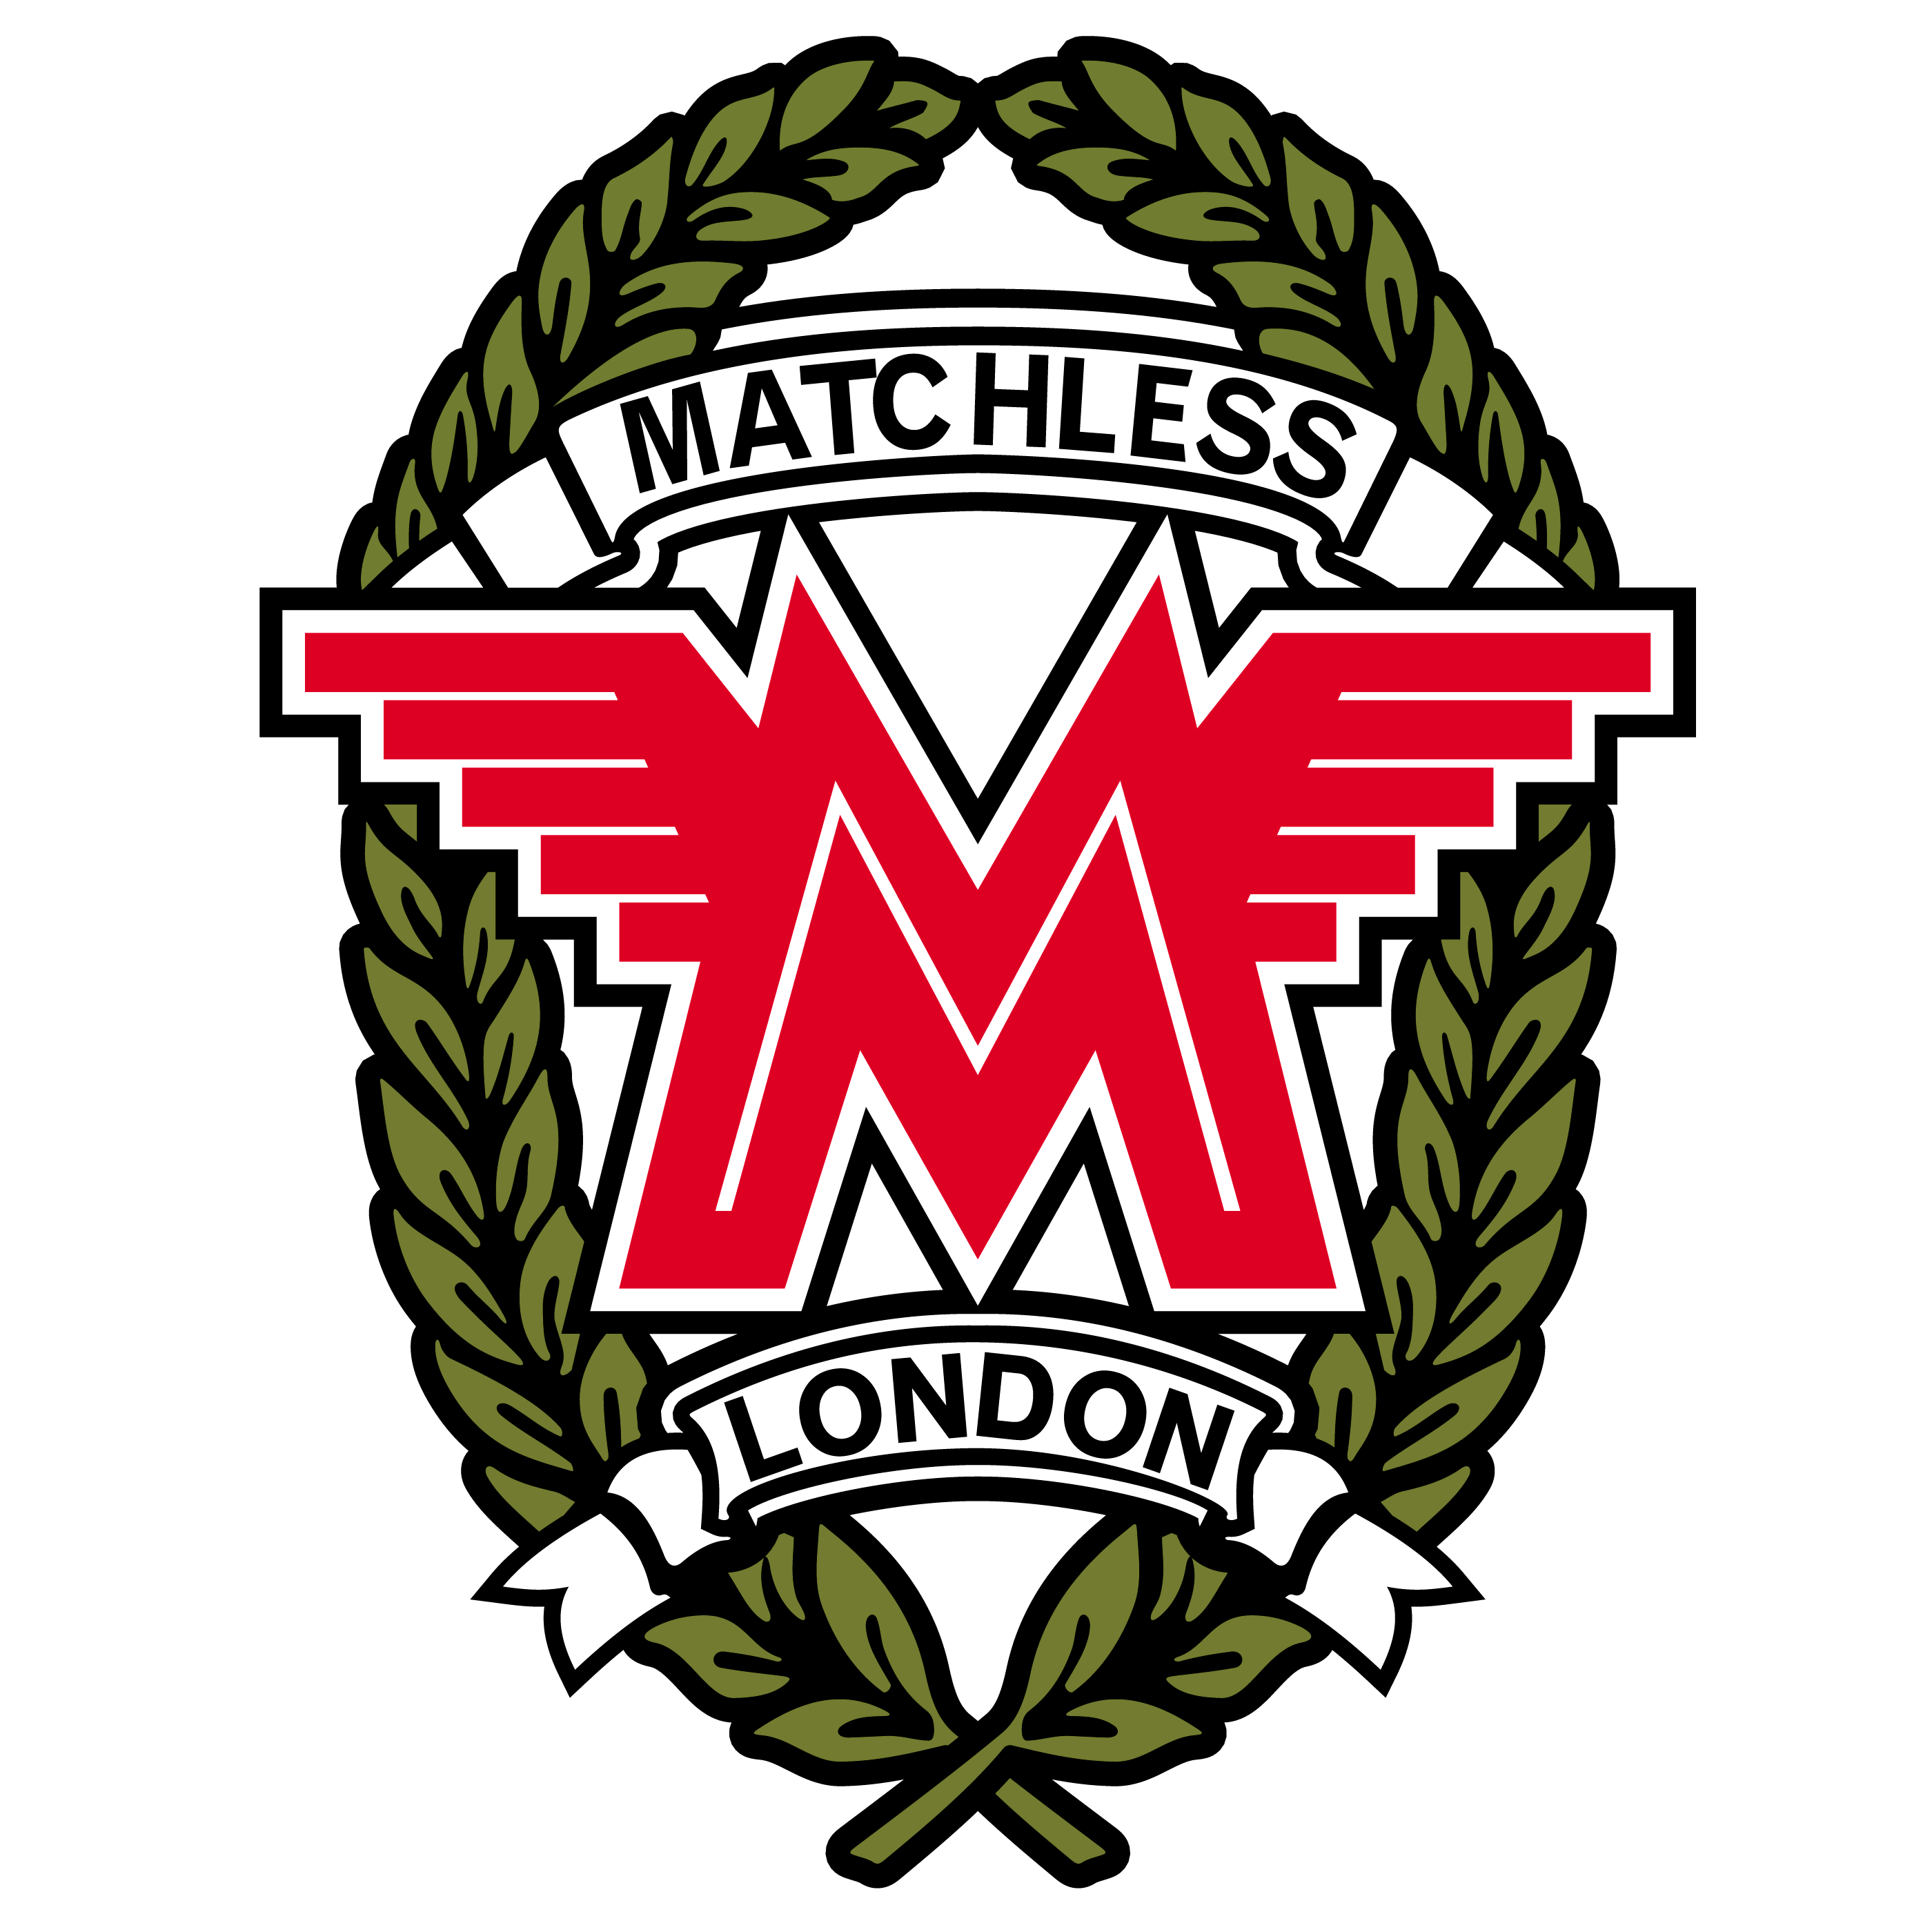 Matchless Motorcycle Logo